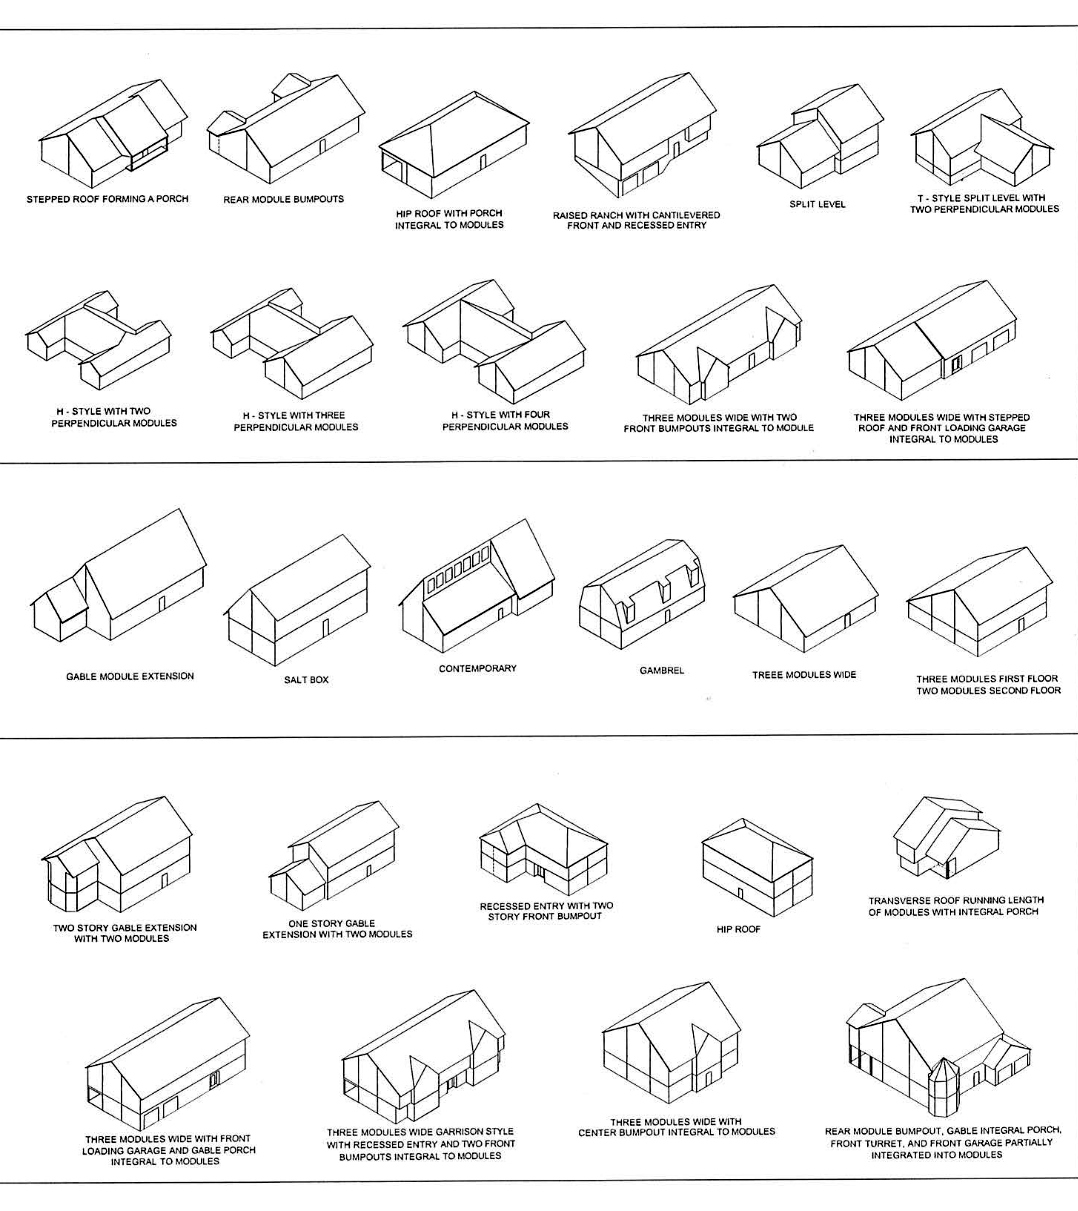 Here Are Some Of The More Typical Configurations Of Modules That Create Various Exterior And Interior